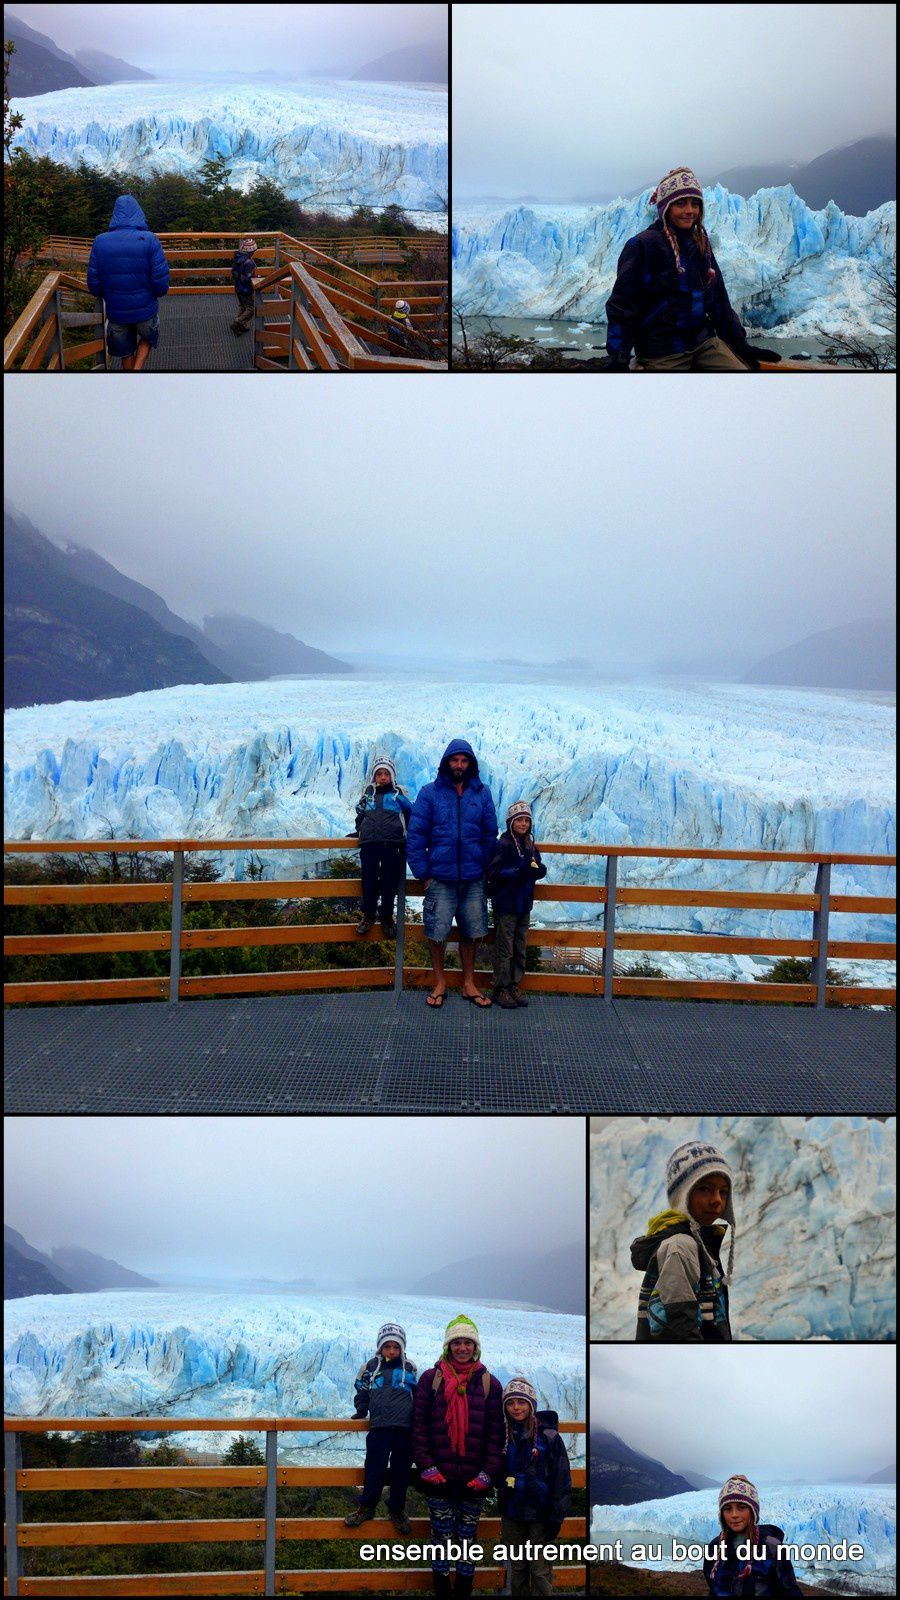 Parking A Car At The Perito Moreno Glacier